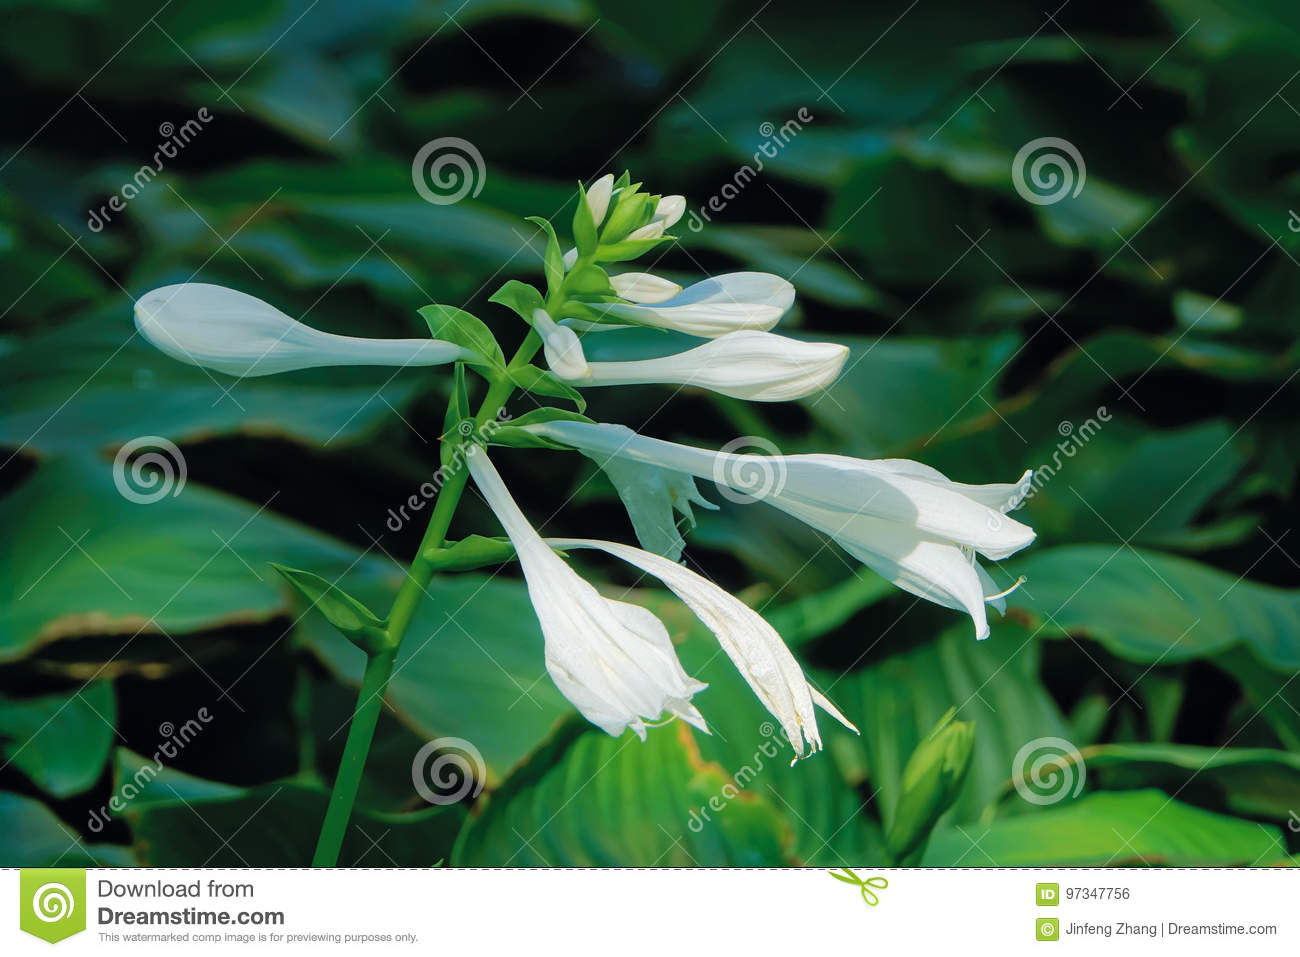 Fragrant plantain lily stock photo image of green plantain 97347756 fragrant plantain lily izmirmasajfo